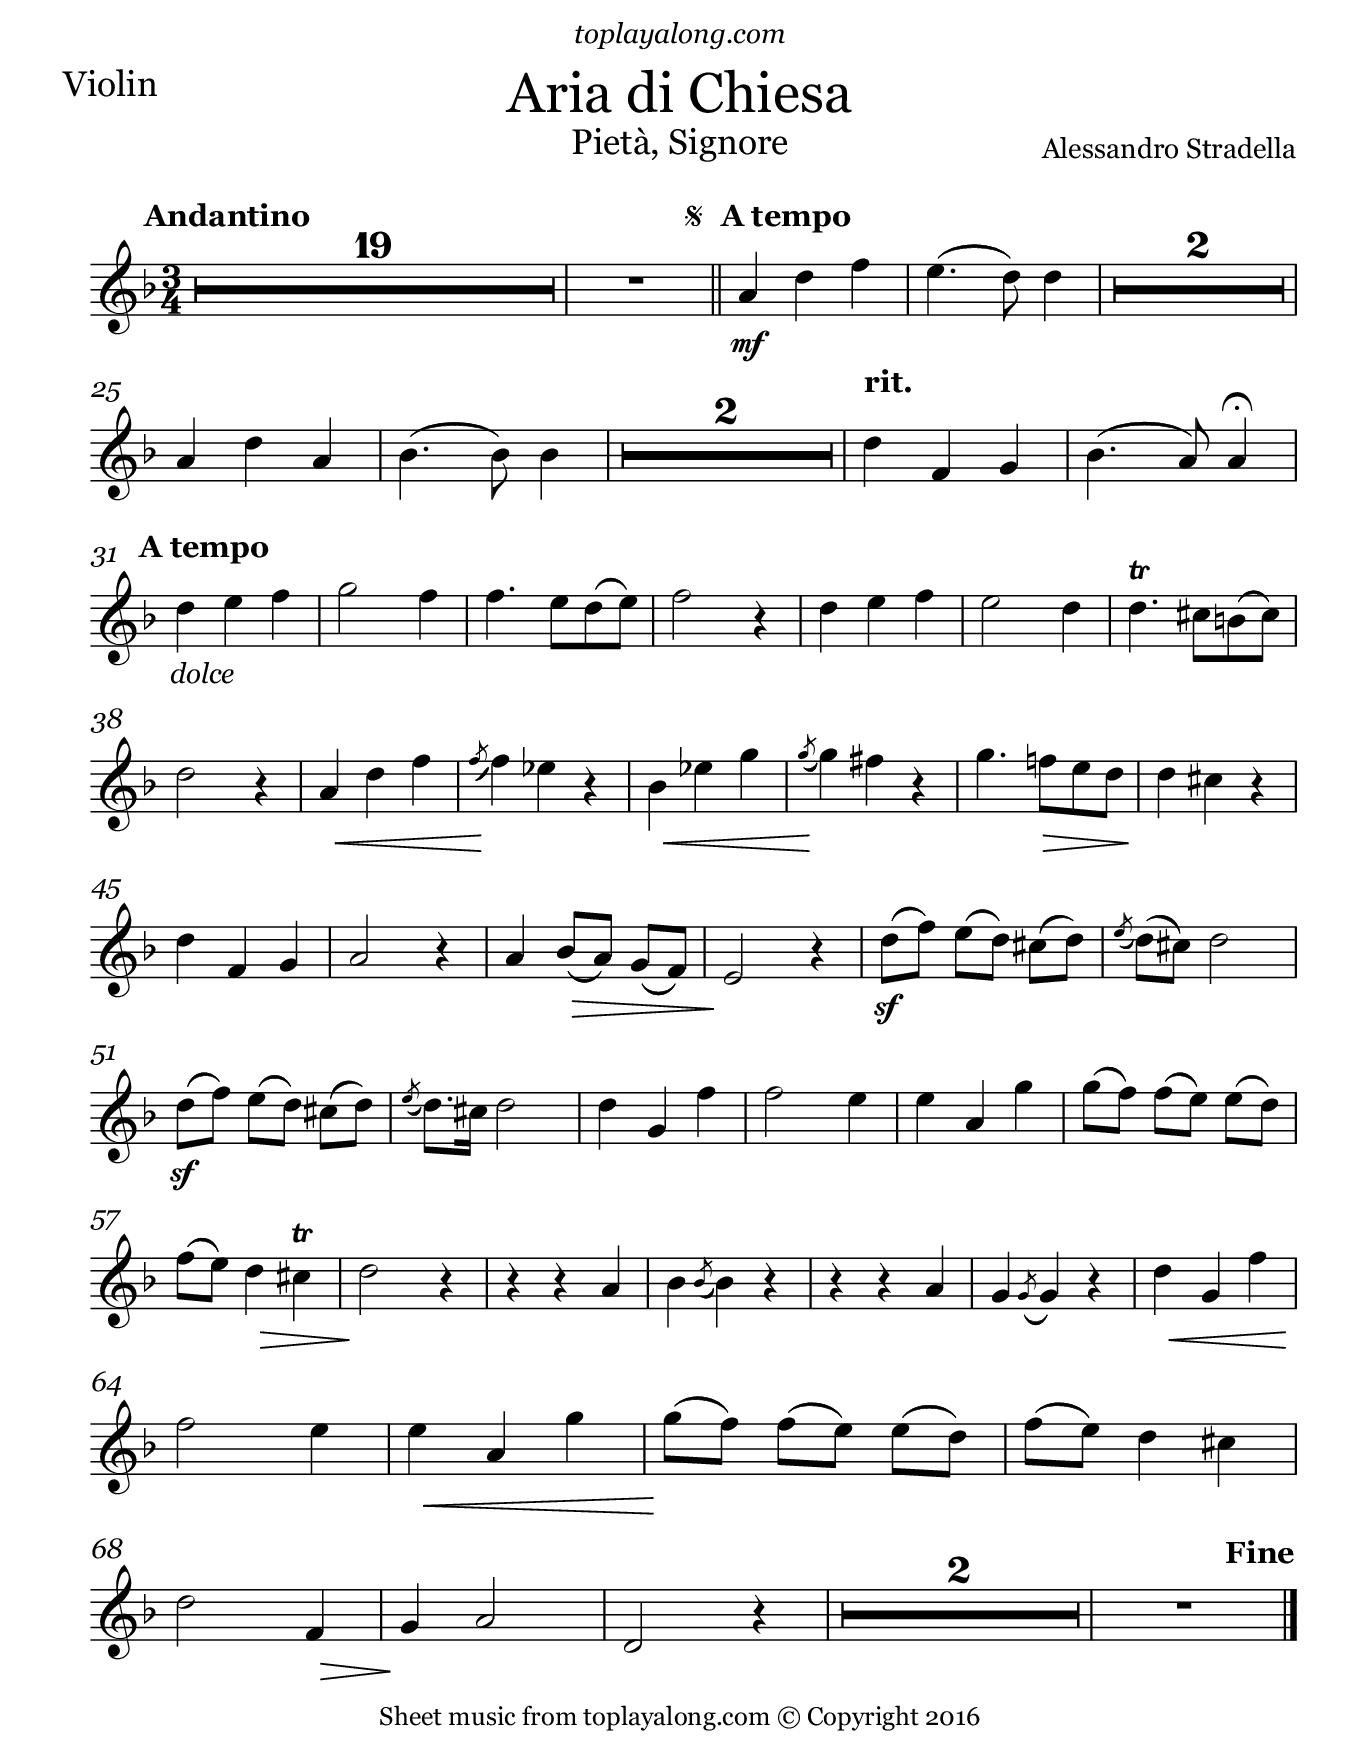 Aria di Chiesa (Pietà, Signore) by Stradella. Sheet music for Violin, page 1.